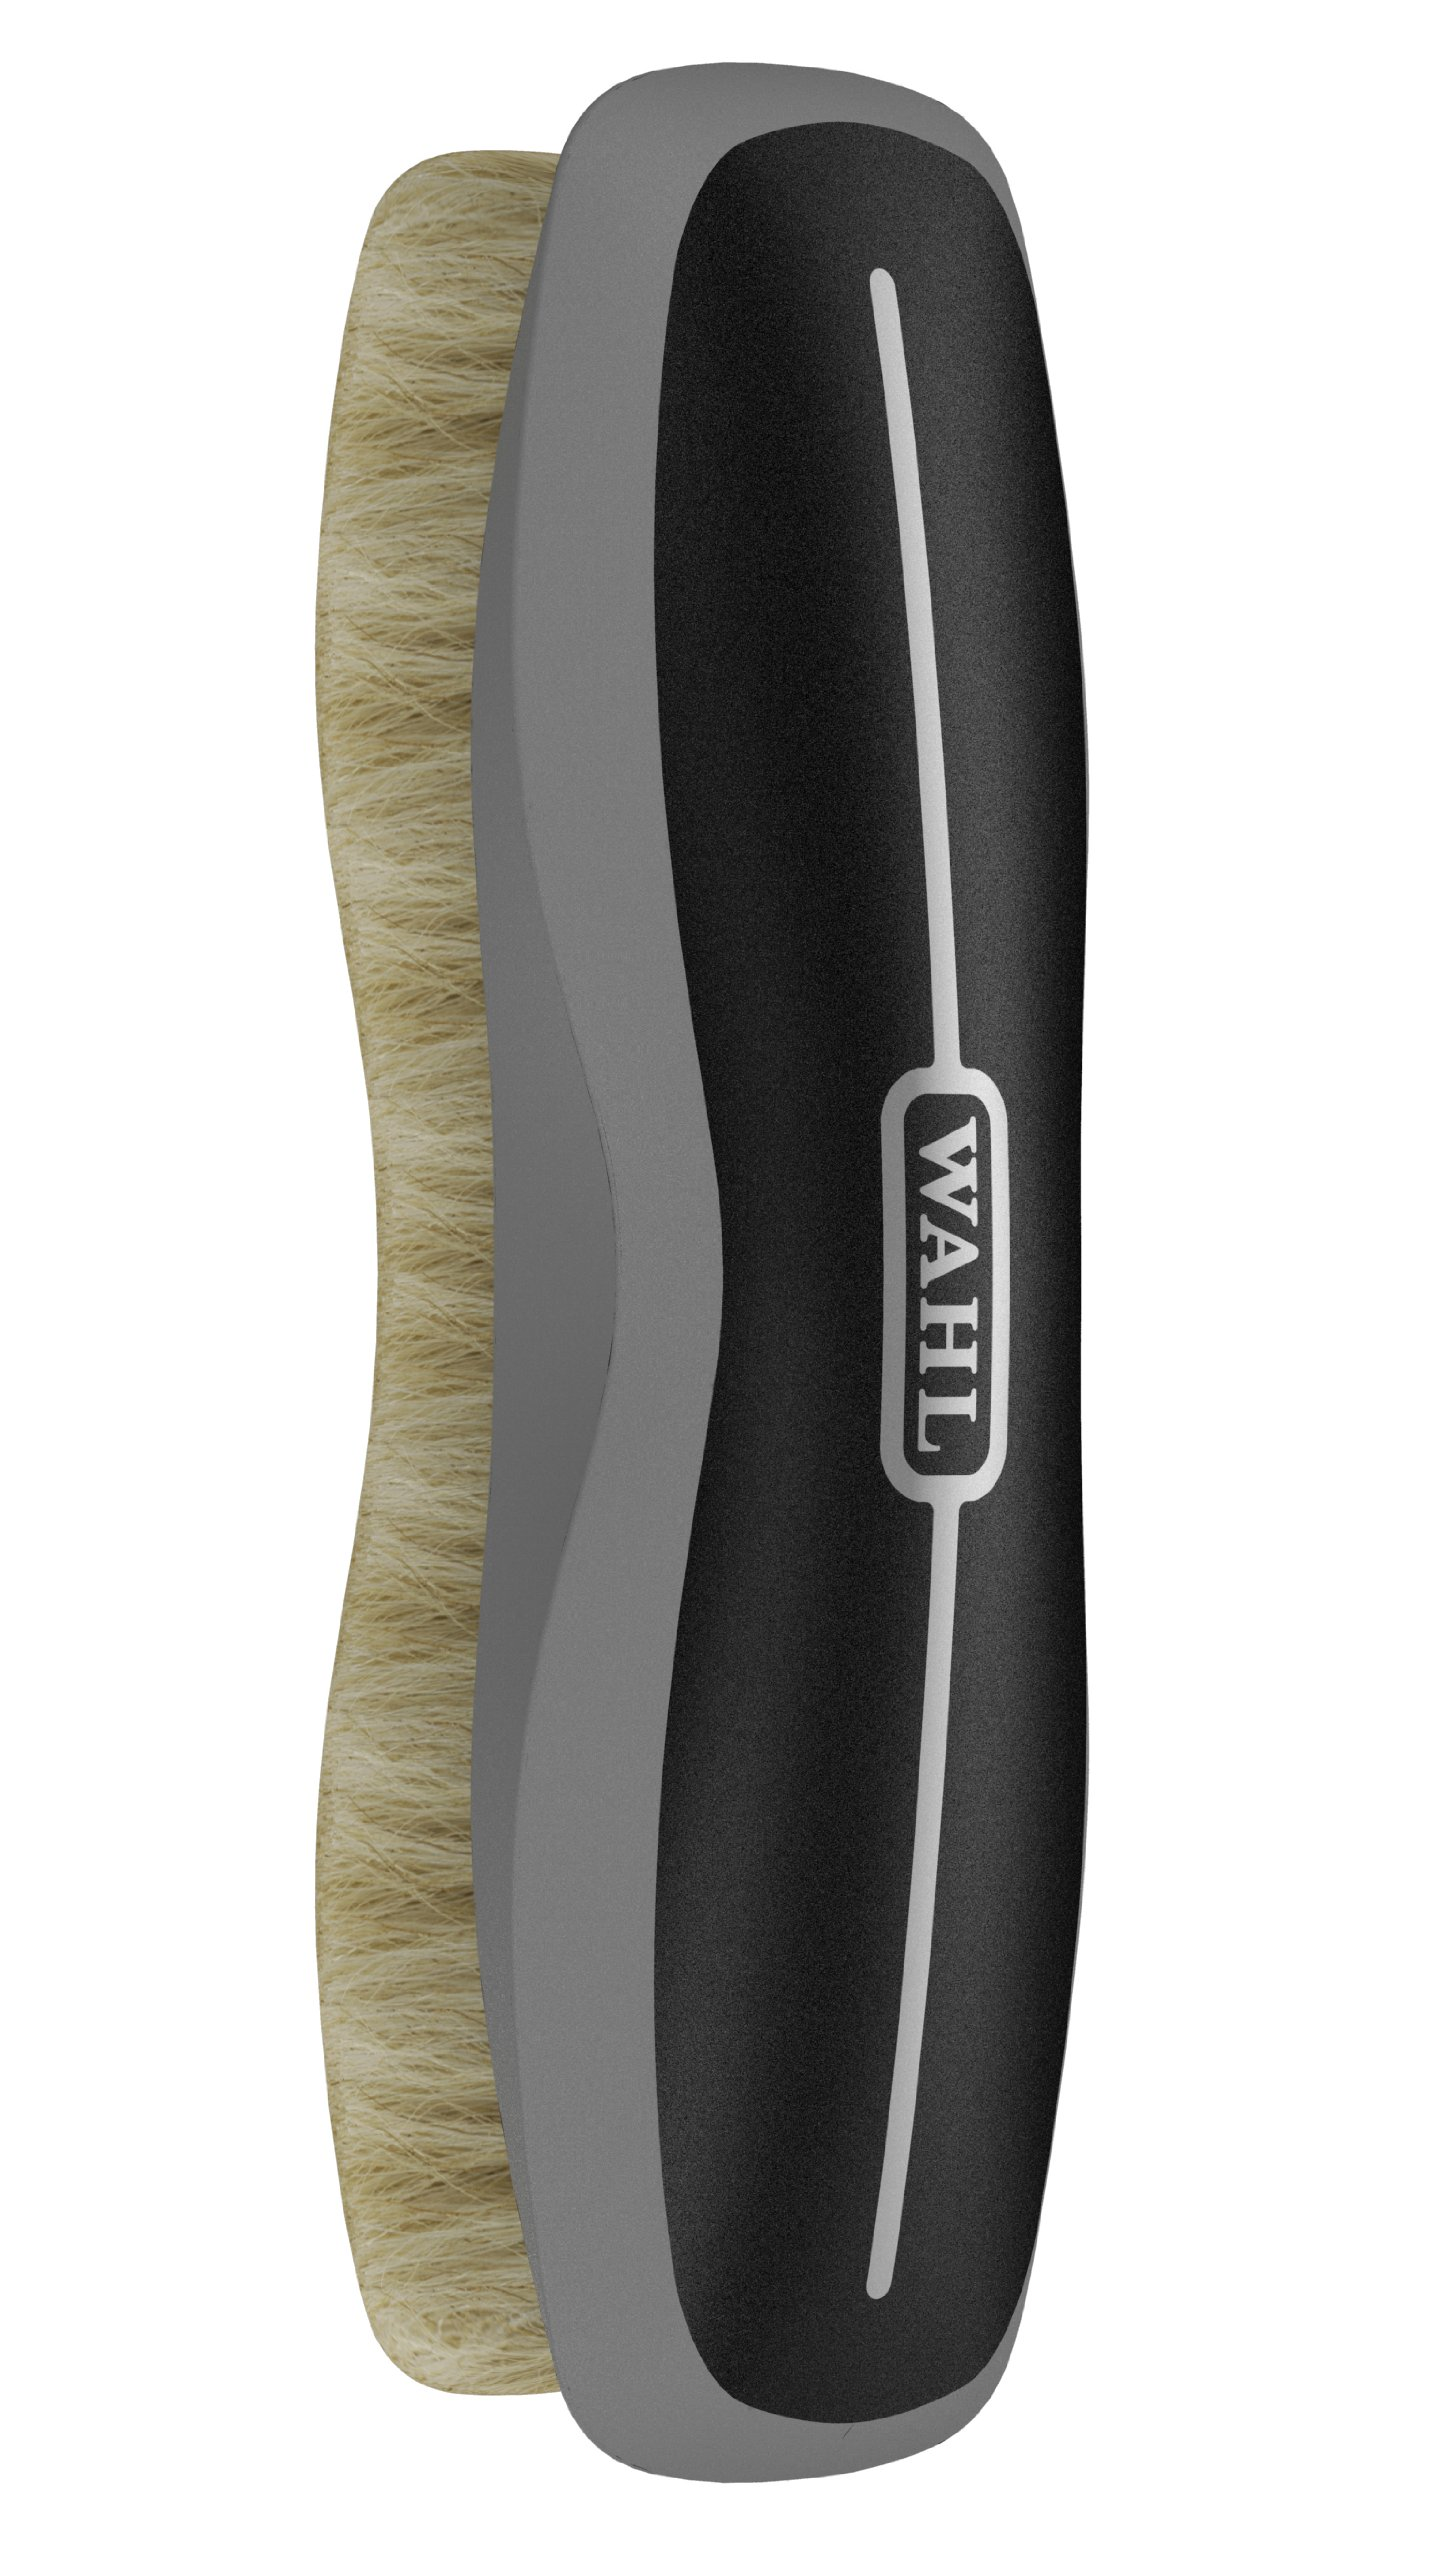 Wahl Professional Animal Equine Soft Body Brush #858704